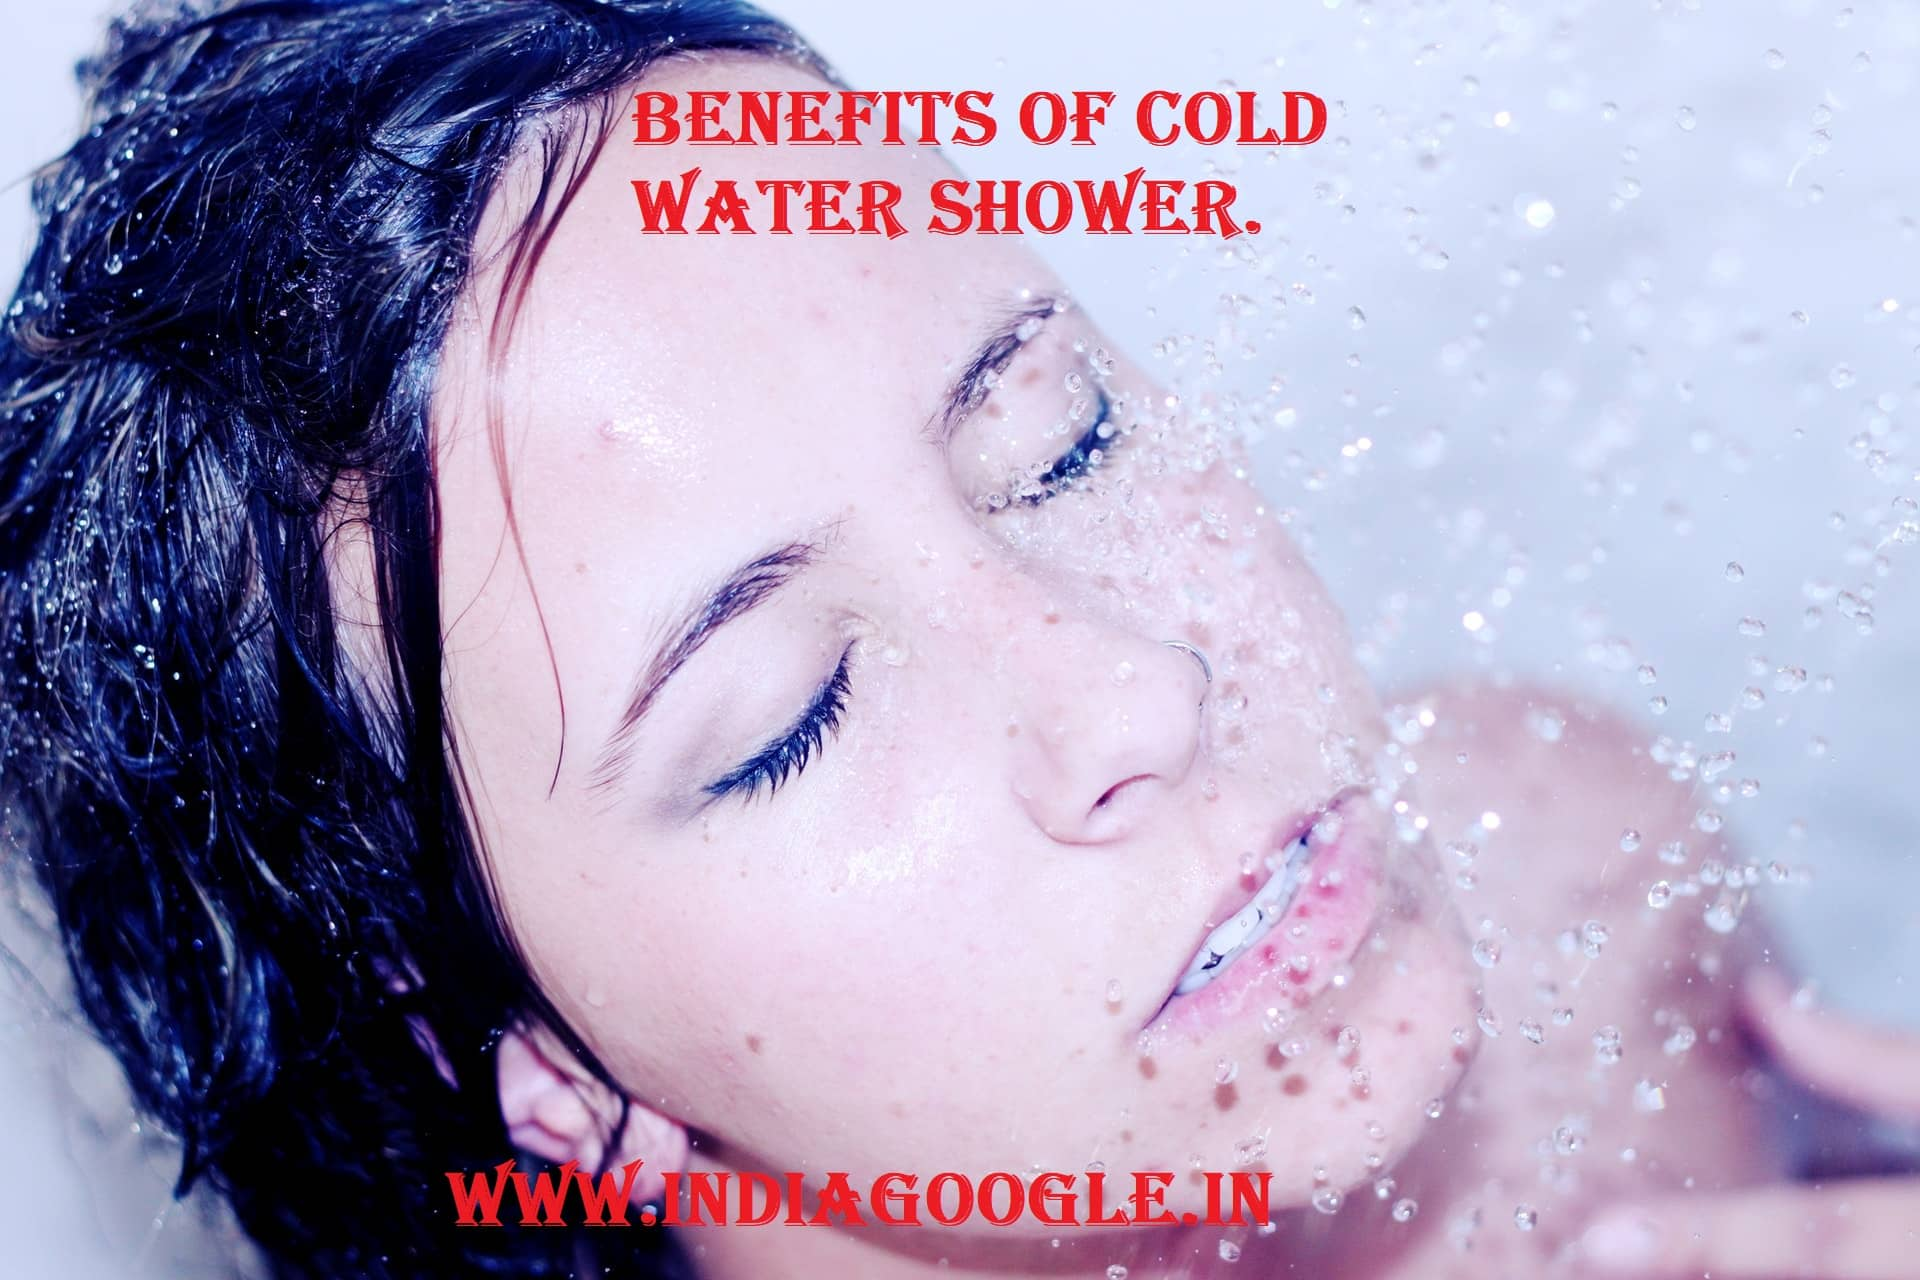 Cold Water Shower Benefits | Benefits of Cold Water Shower